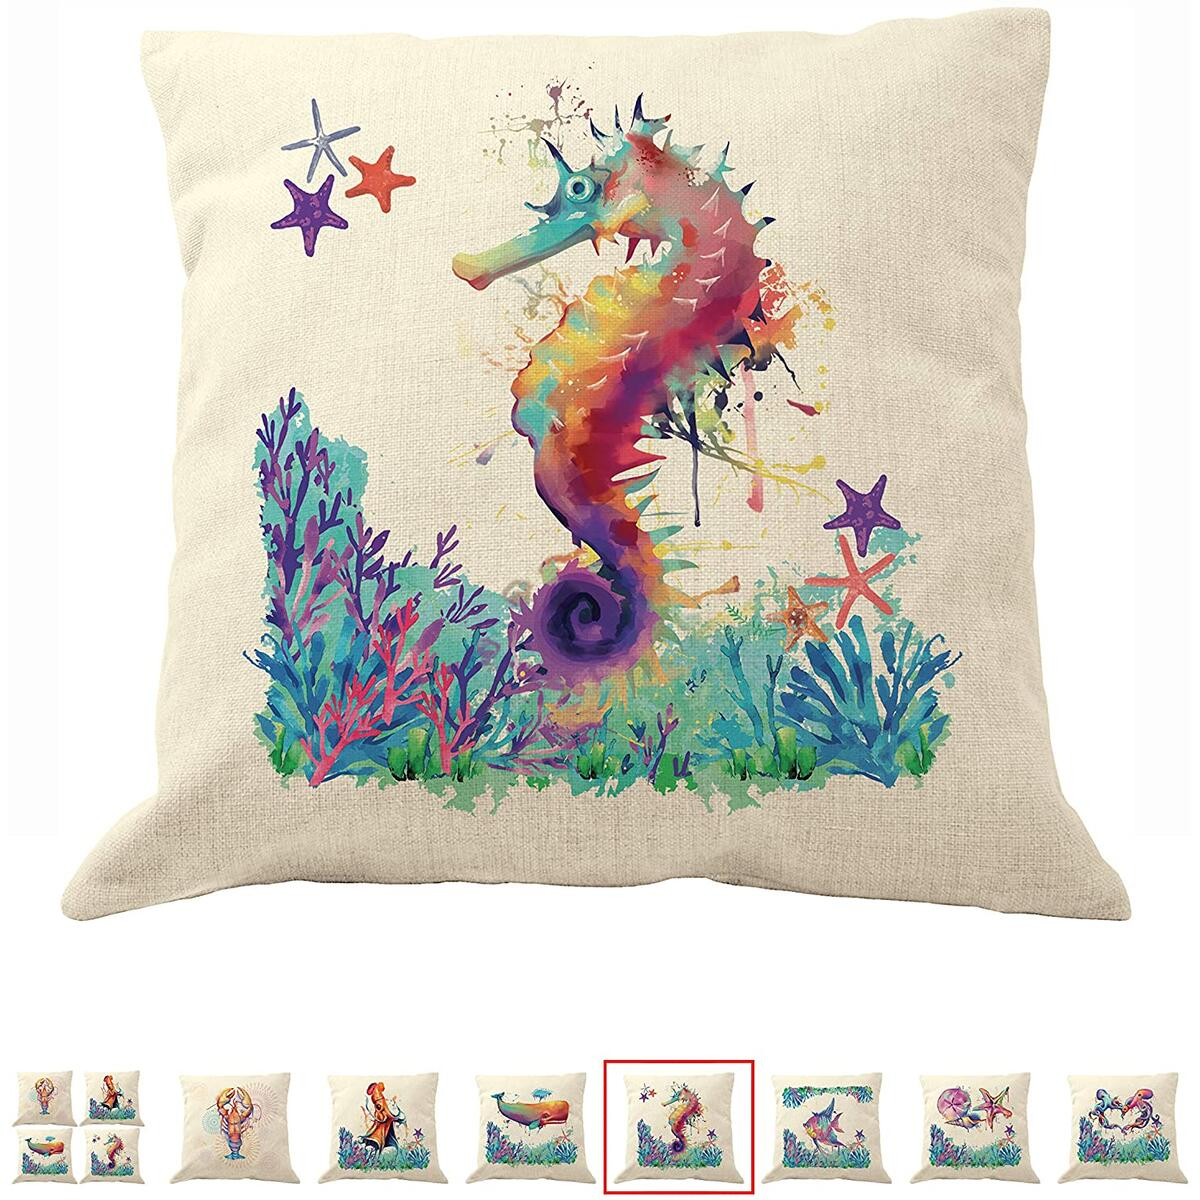 DrupsCo 18x18 Seahorse Pillow Cover for Couches - Seahorse Decor Pillow Cover, Cotton Linen Coastal Decor Beach Theme Pillow Covers